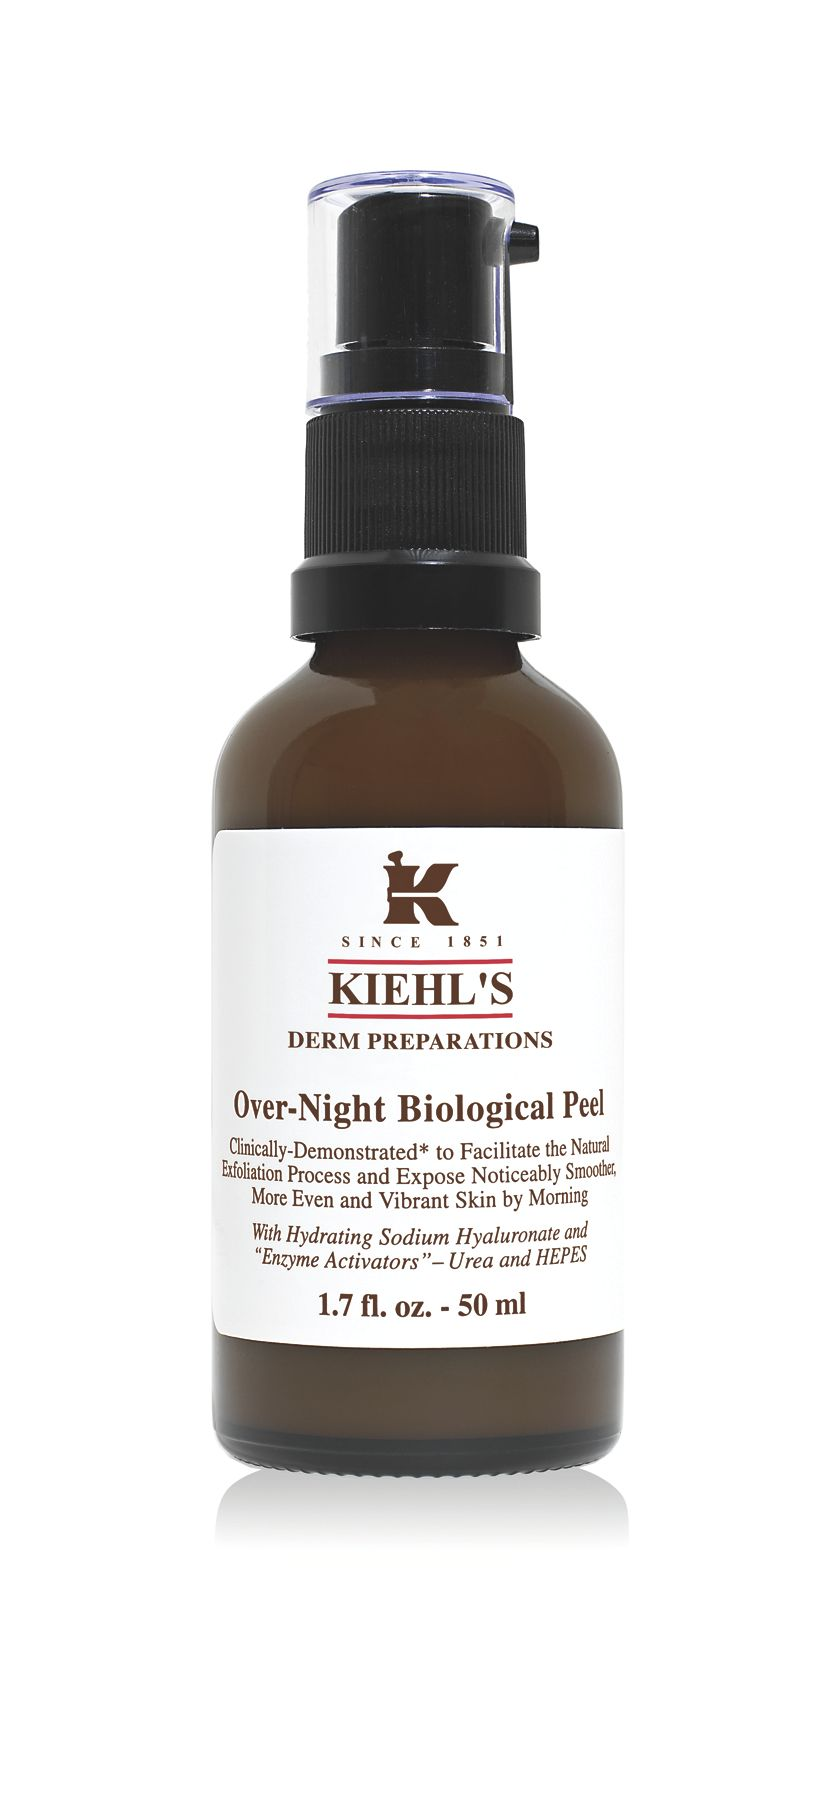 Over-Night Biological Peel 50ml.